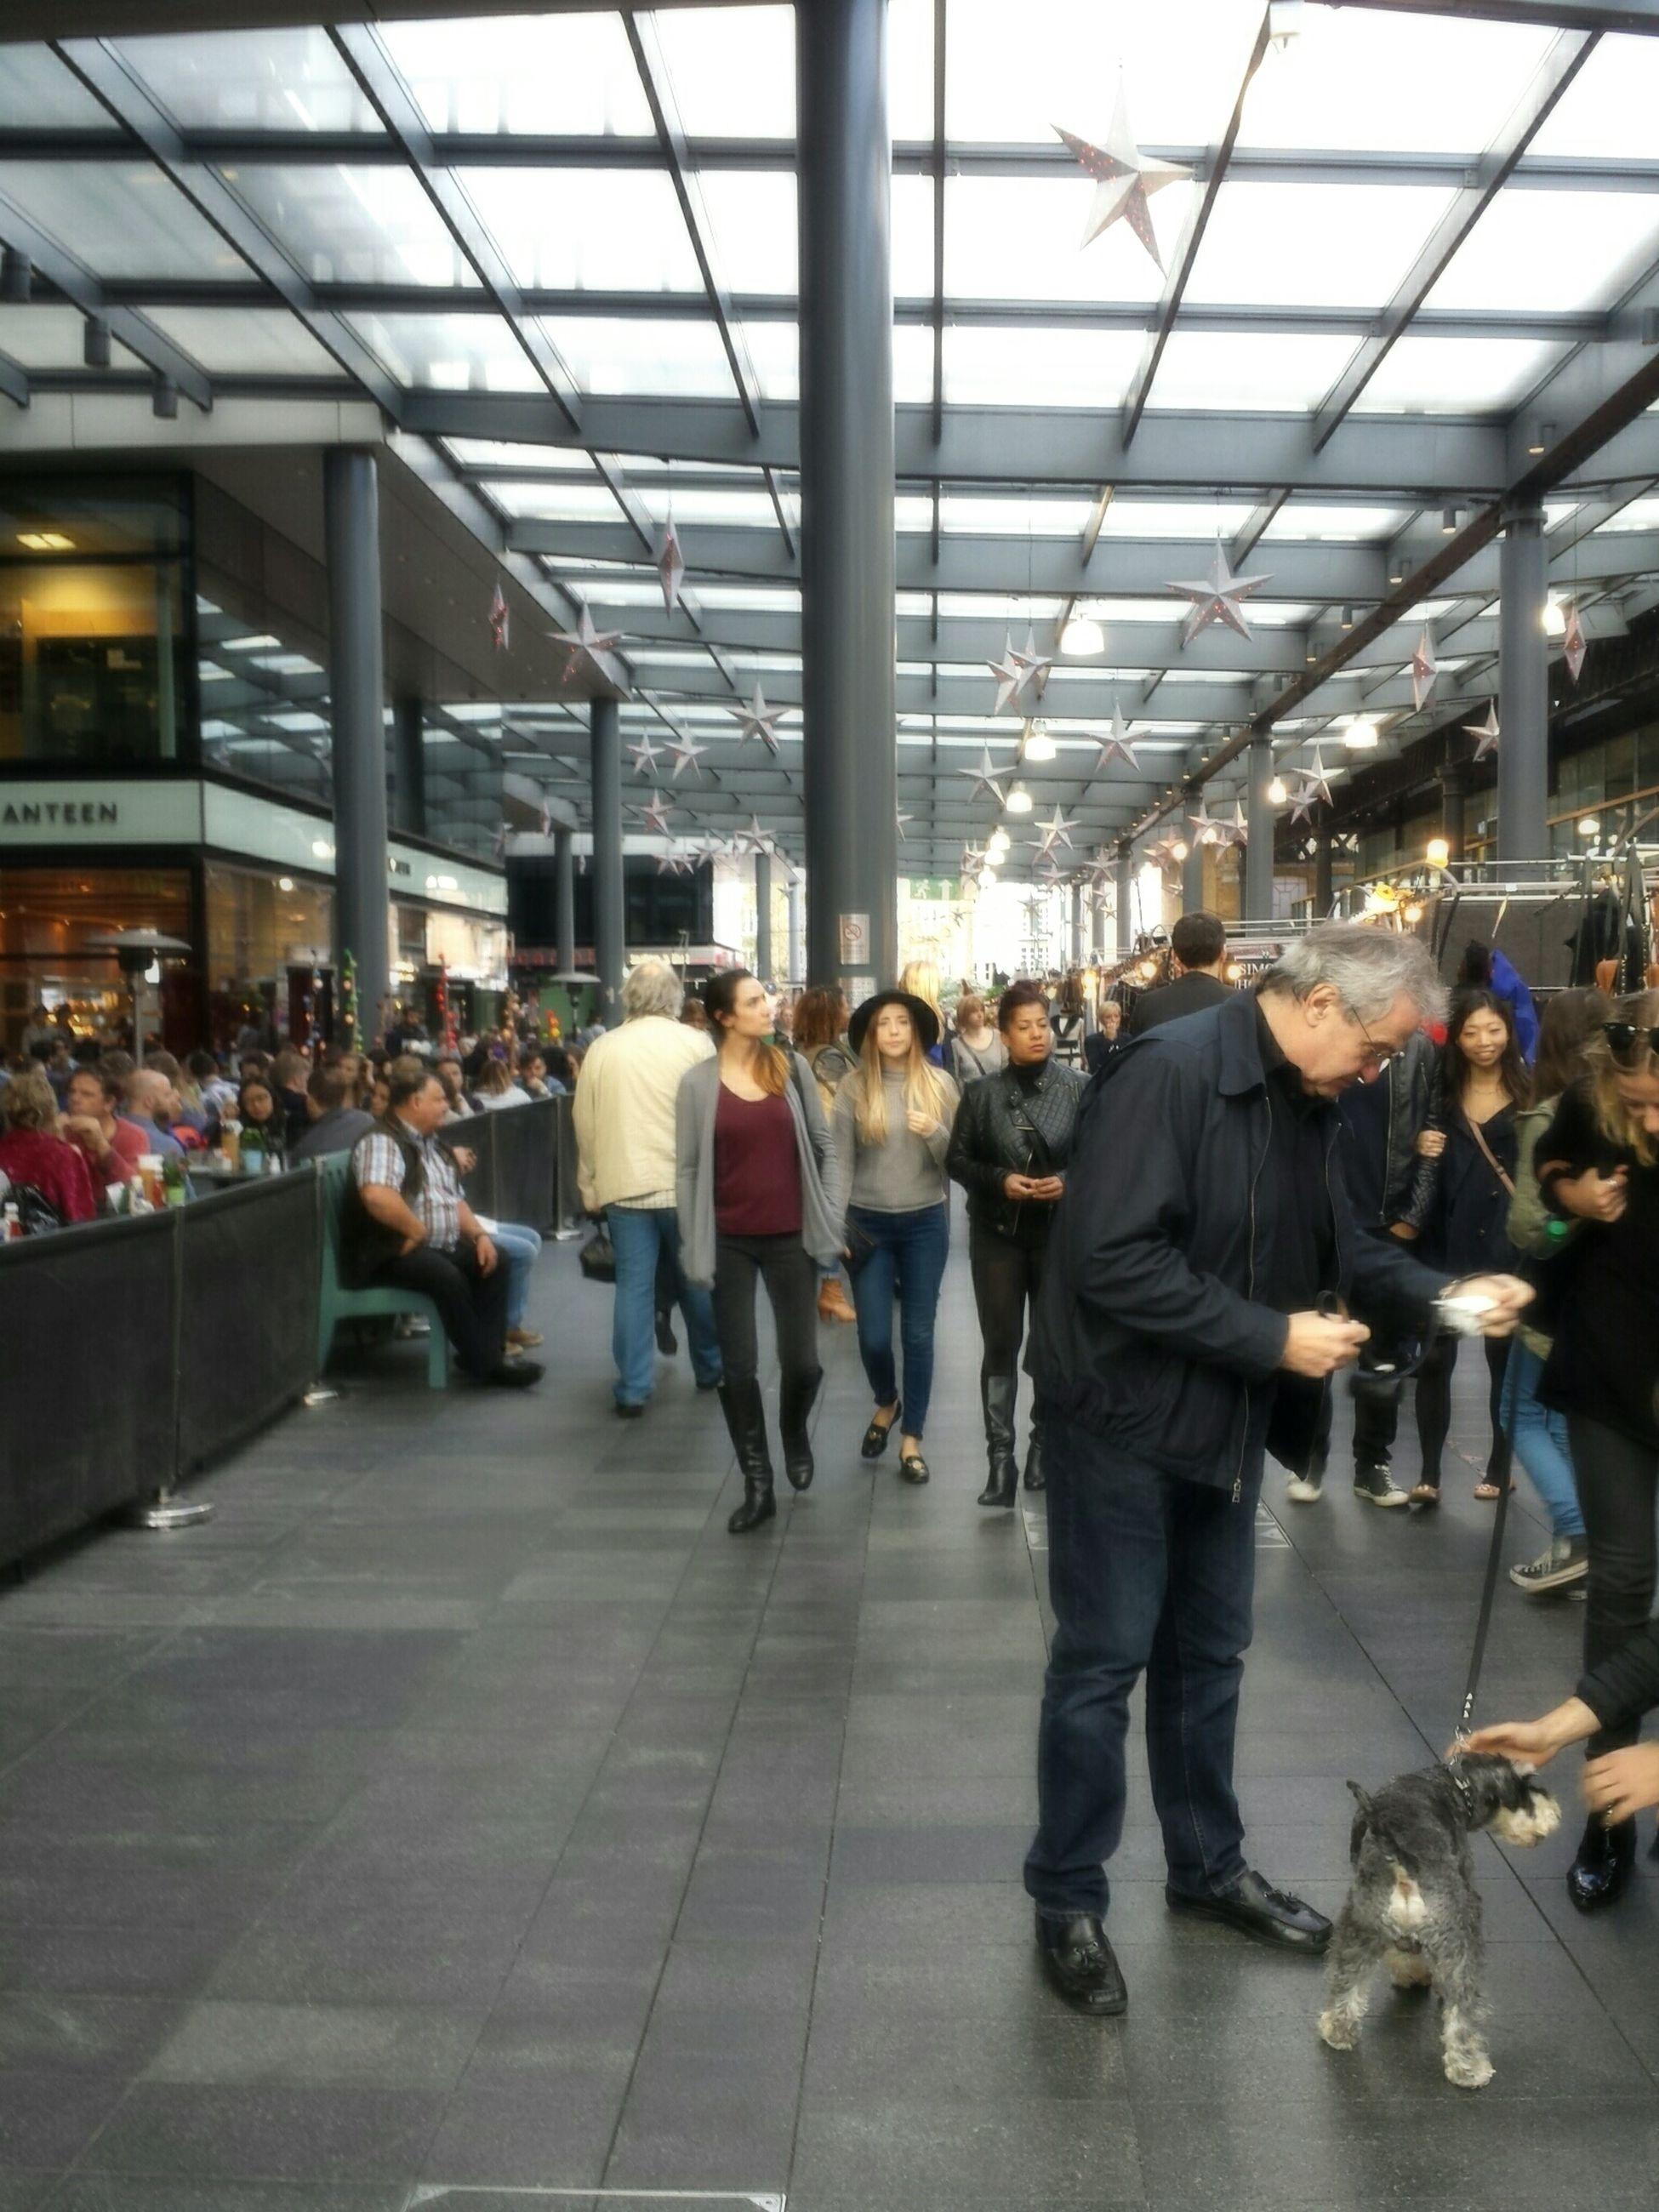 indoors, large group of people, men, person, retail, lifestyles, market, market stall, shopping, store, for sale, leisure activity, city life, consumerism, walking, choice, illuminated, standing, ceiling